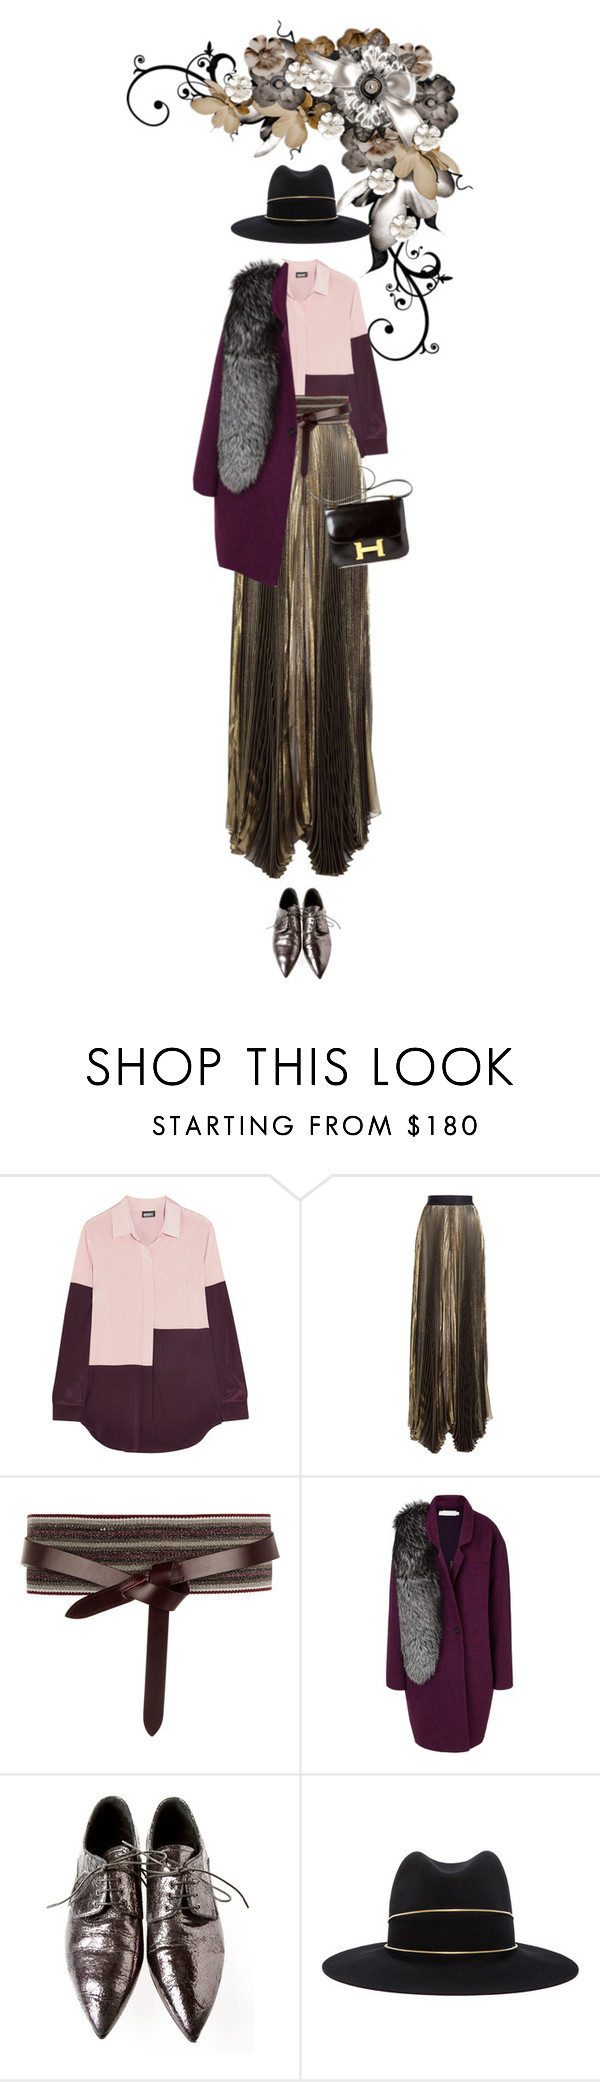 """""""Annabel Blake #4763"""" by canlui ❤ liked on Polyvore featuring DKNY, Faith Connexion, Isabel Marant, Kaelen, Miu Miu, Janessa Leone and Hermès"""